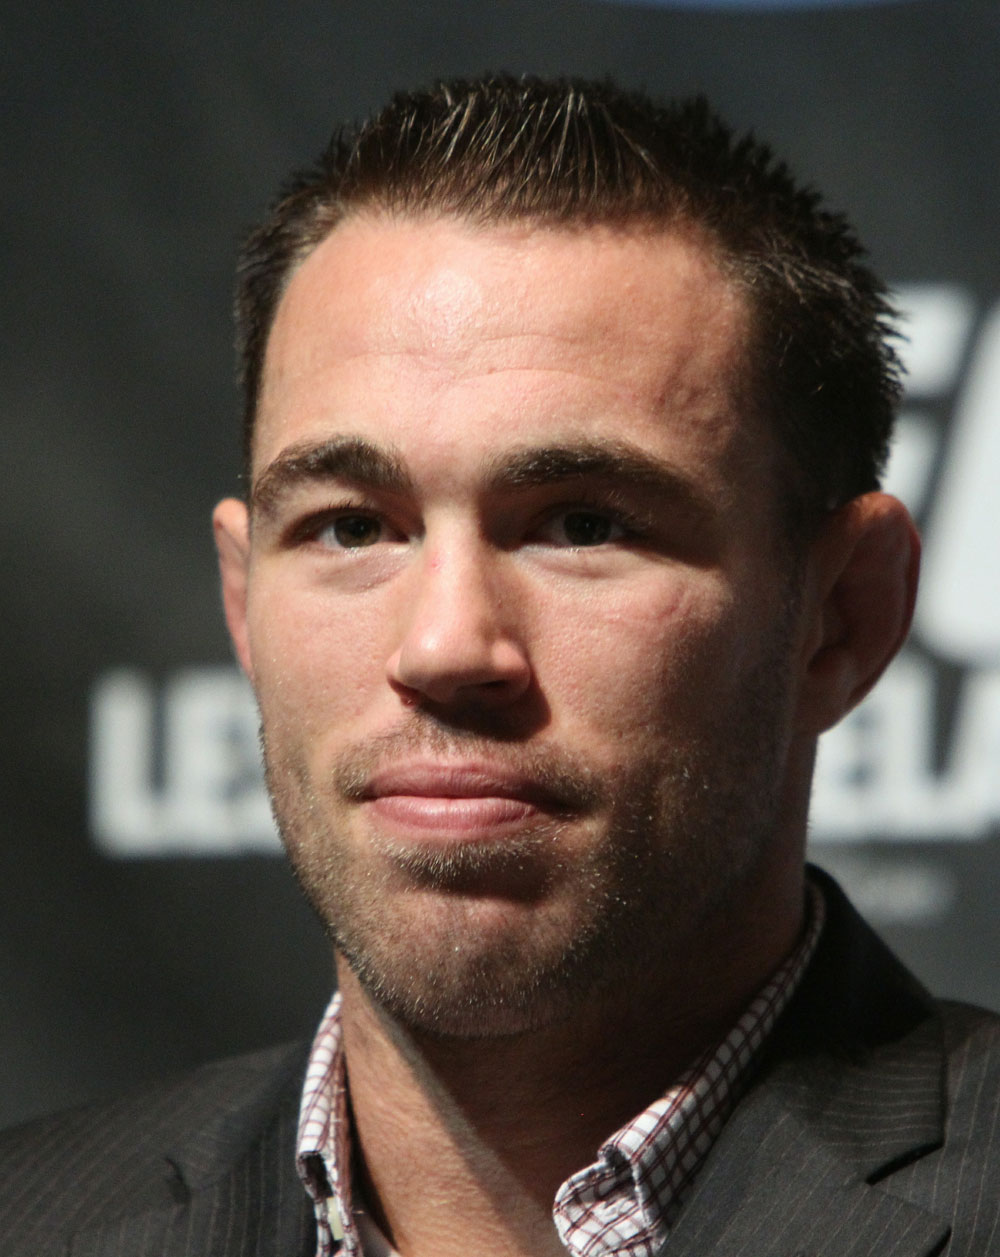 Welterweight fighter Jake Shields at the UFC 121 pre-fight press conference at the Walt Disney Concert Hall on October, 20 2010 in Los Angeles, California.